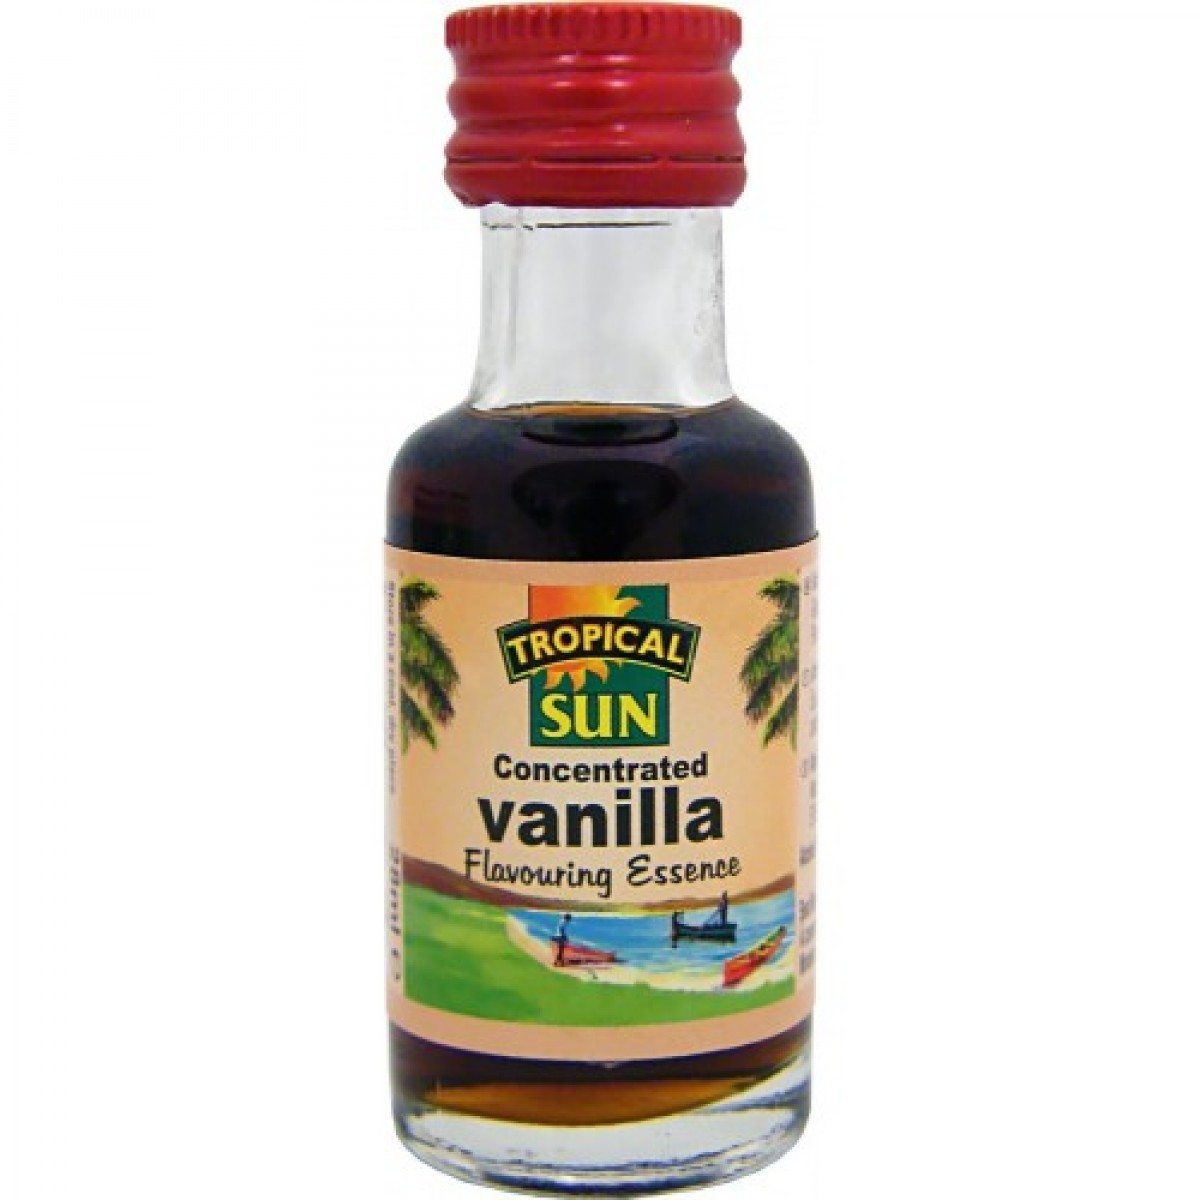 TS concentrated vanilla extract